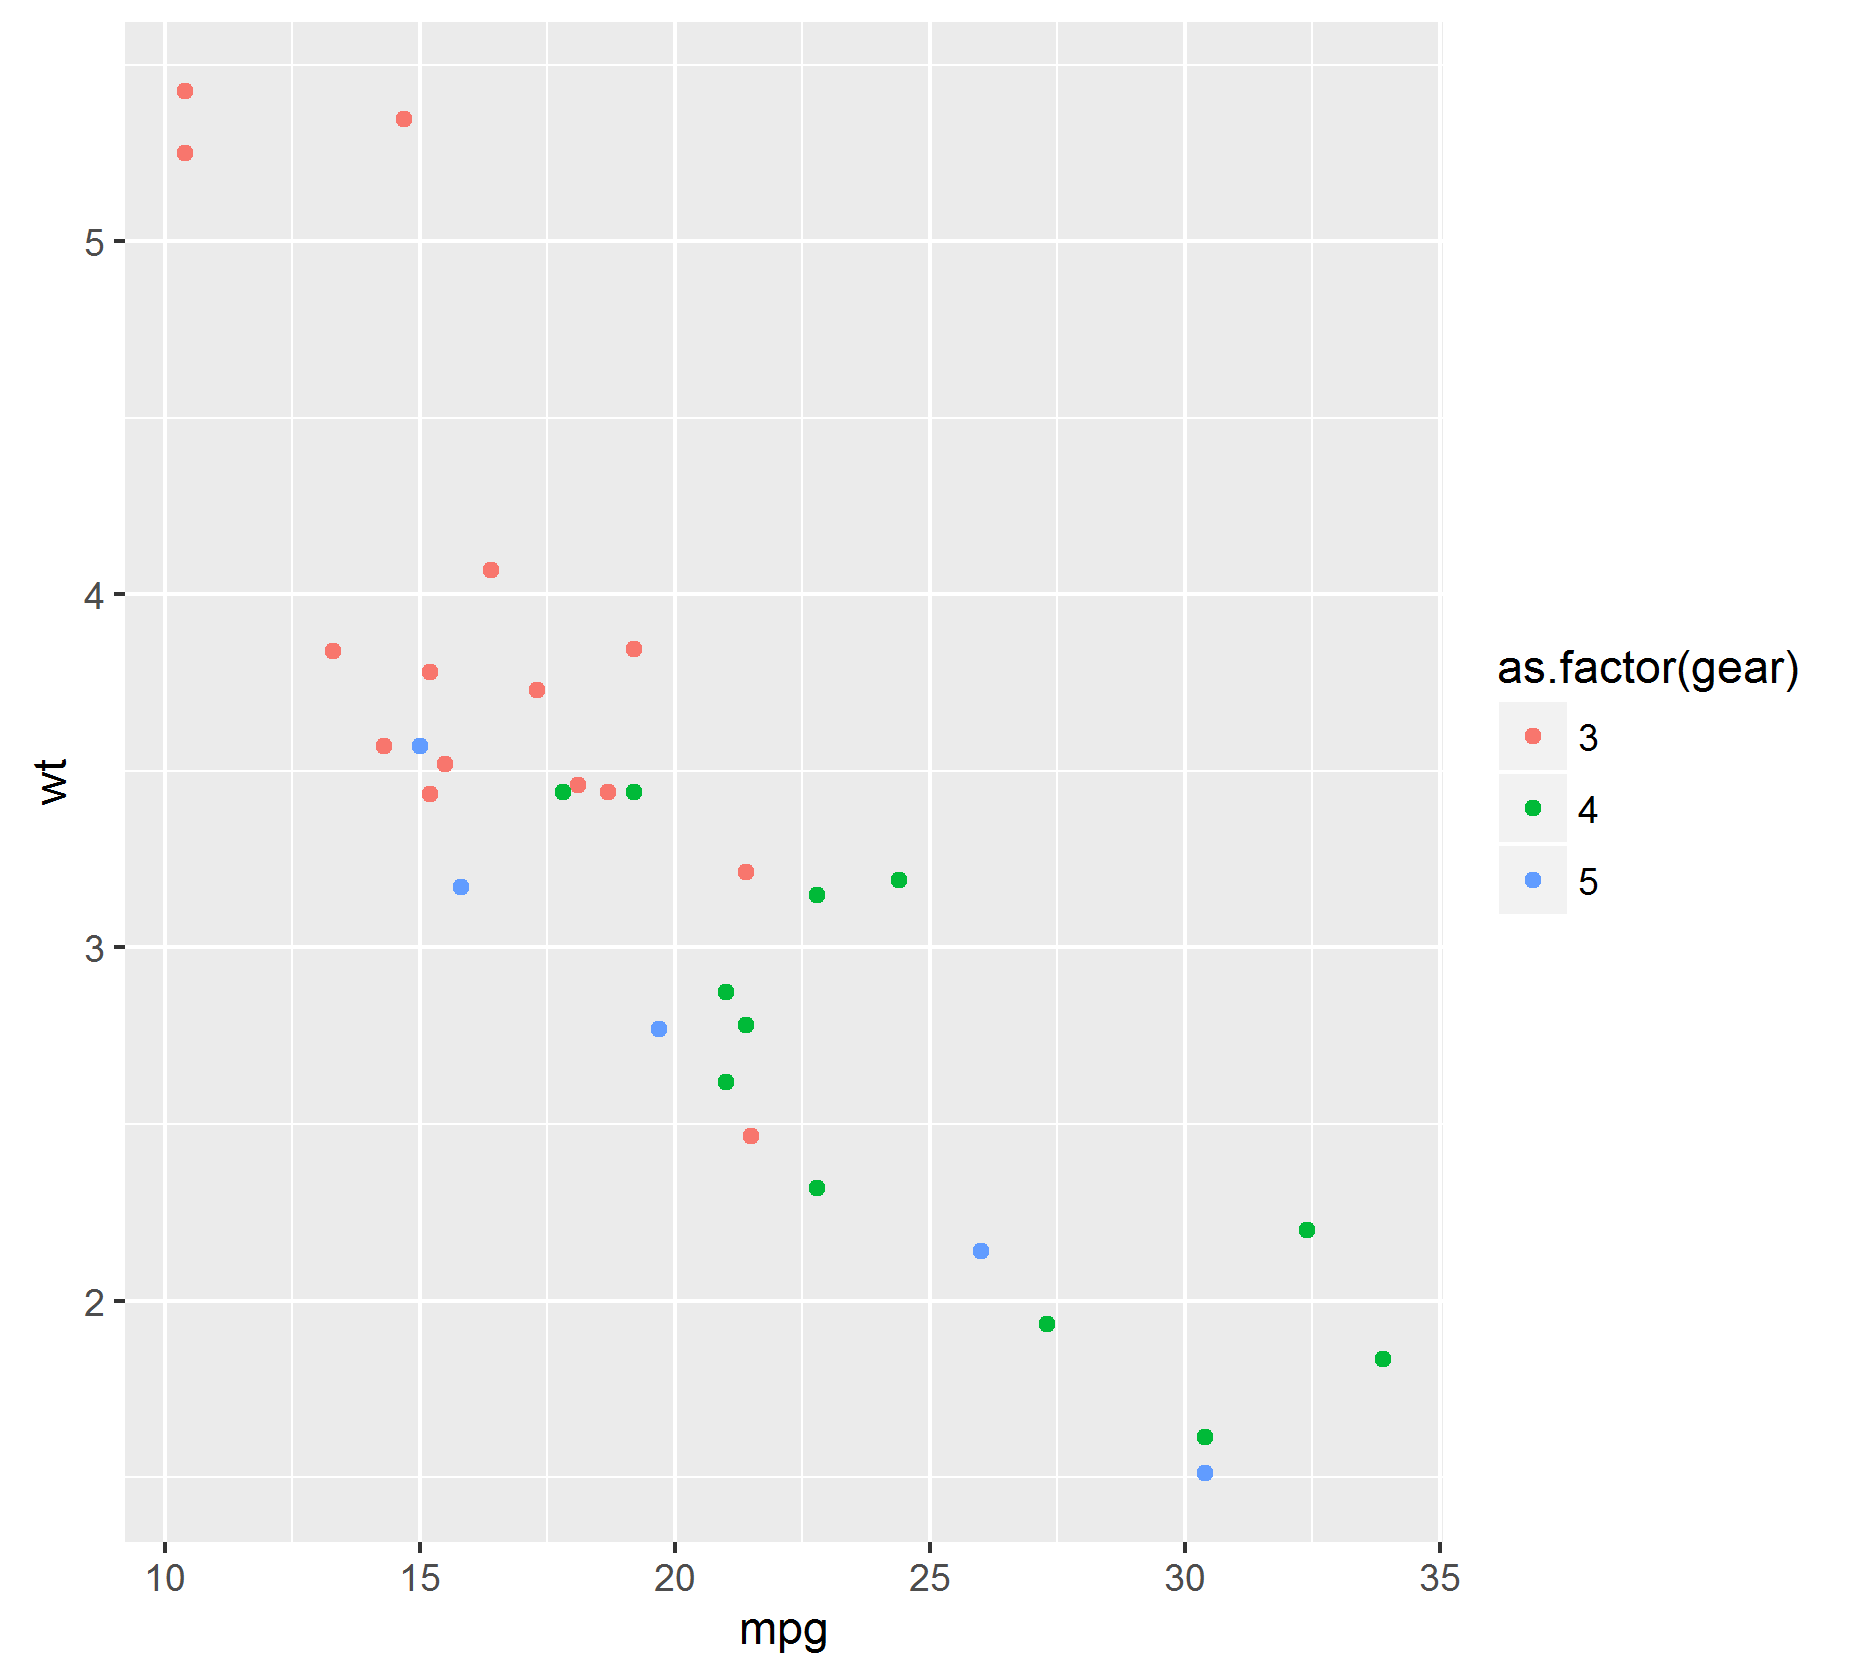 ggplot(data = mtcars, aes(mpg,  wt )) + geom_point(aes(color = as.factor(gear)))